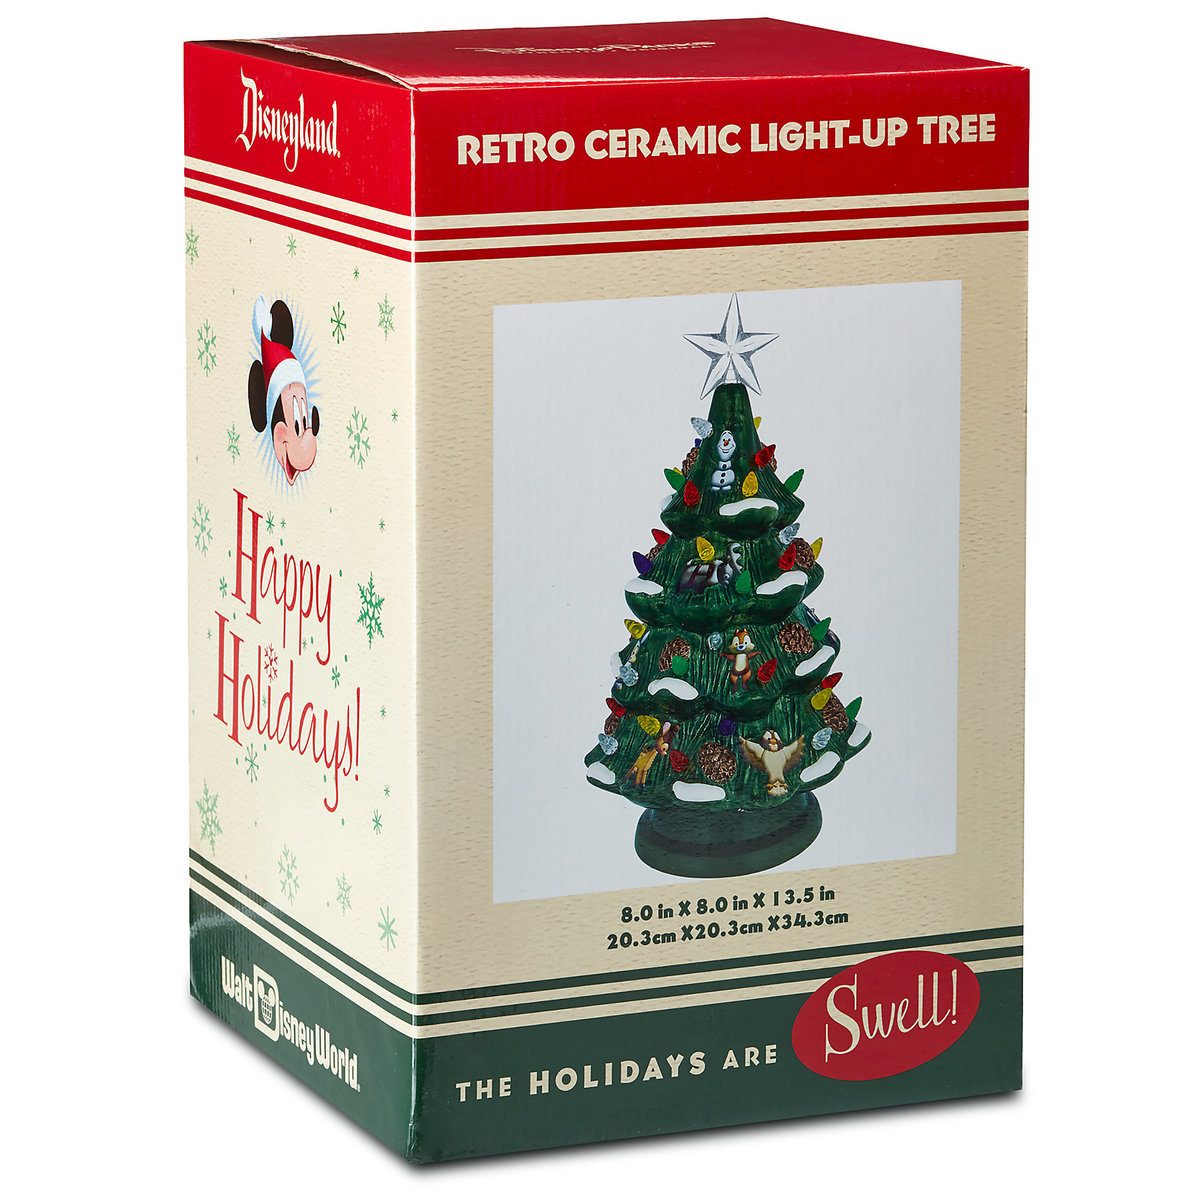 Ceramic Christmas Tree With Lights.Disney Light Up Christmas Tree Mickey And Woodland Friends Ceramic